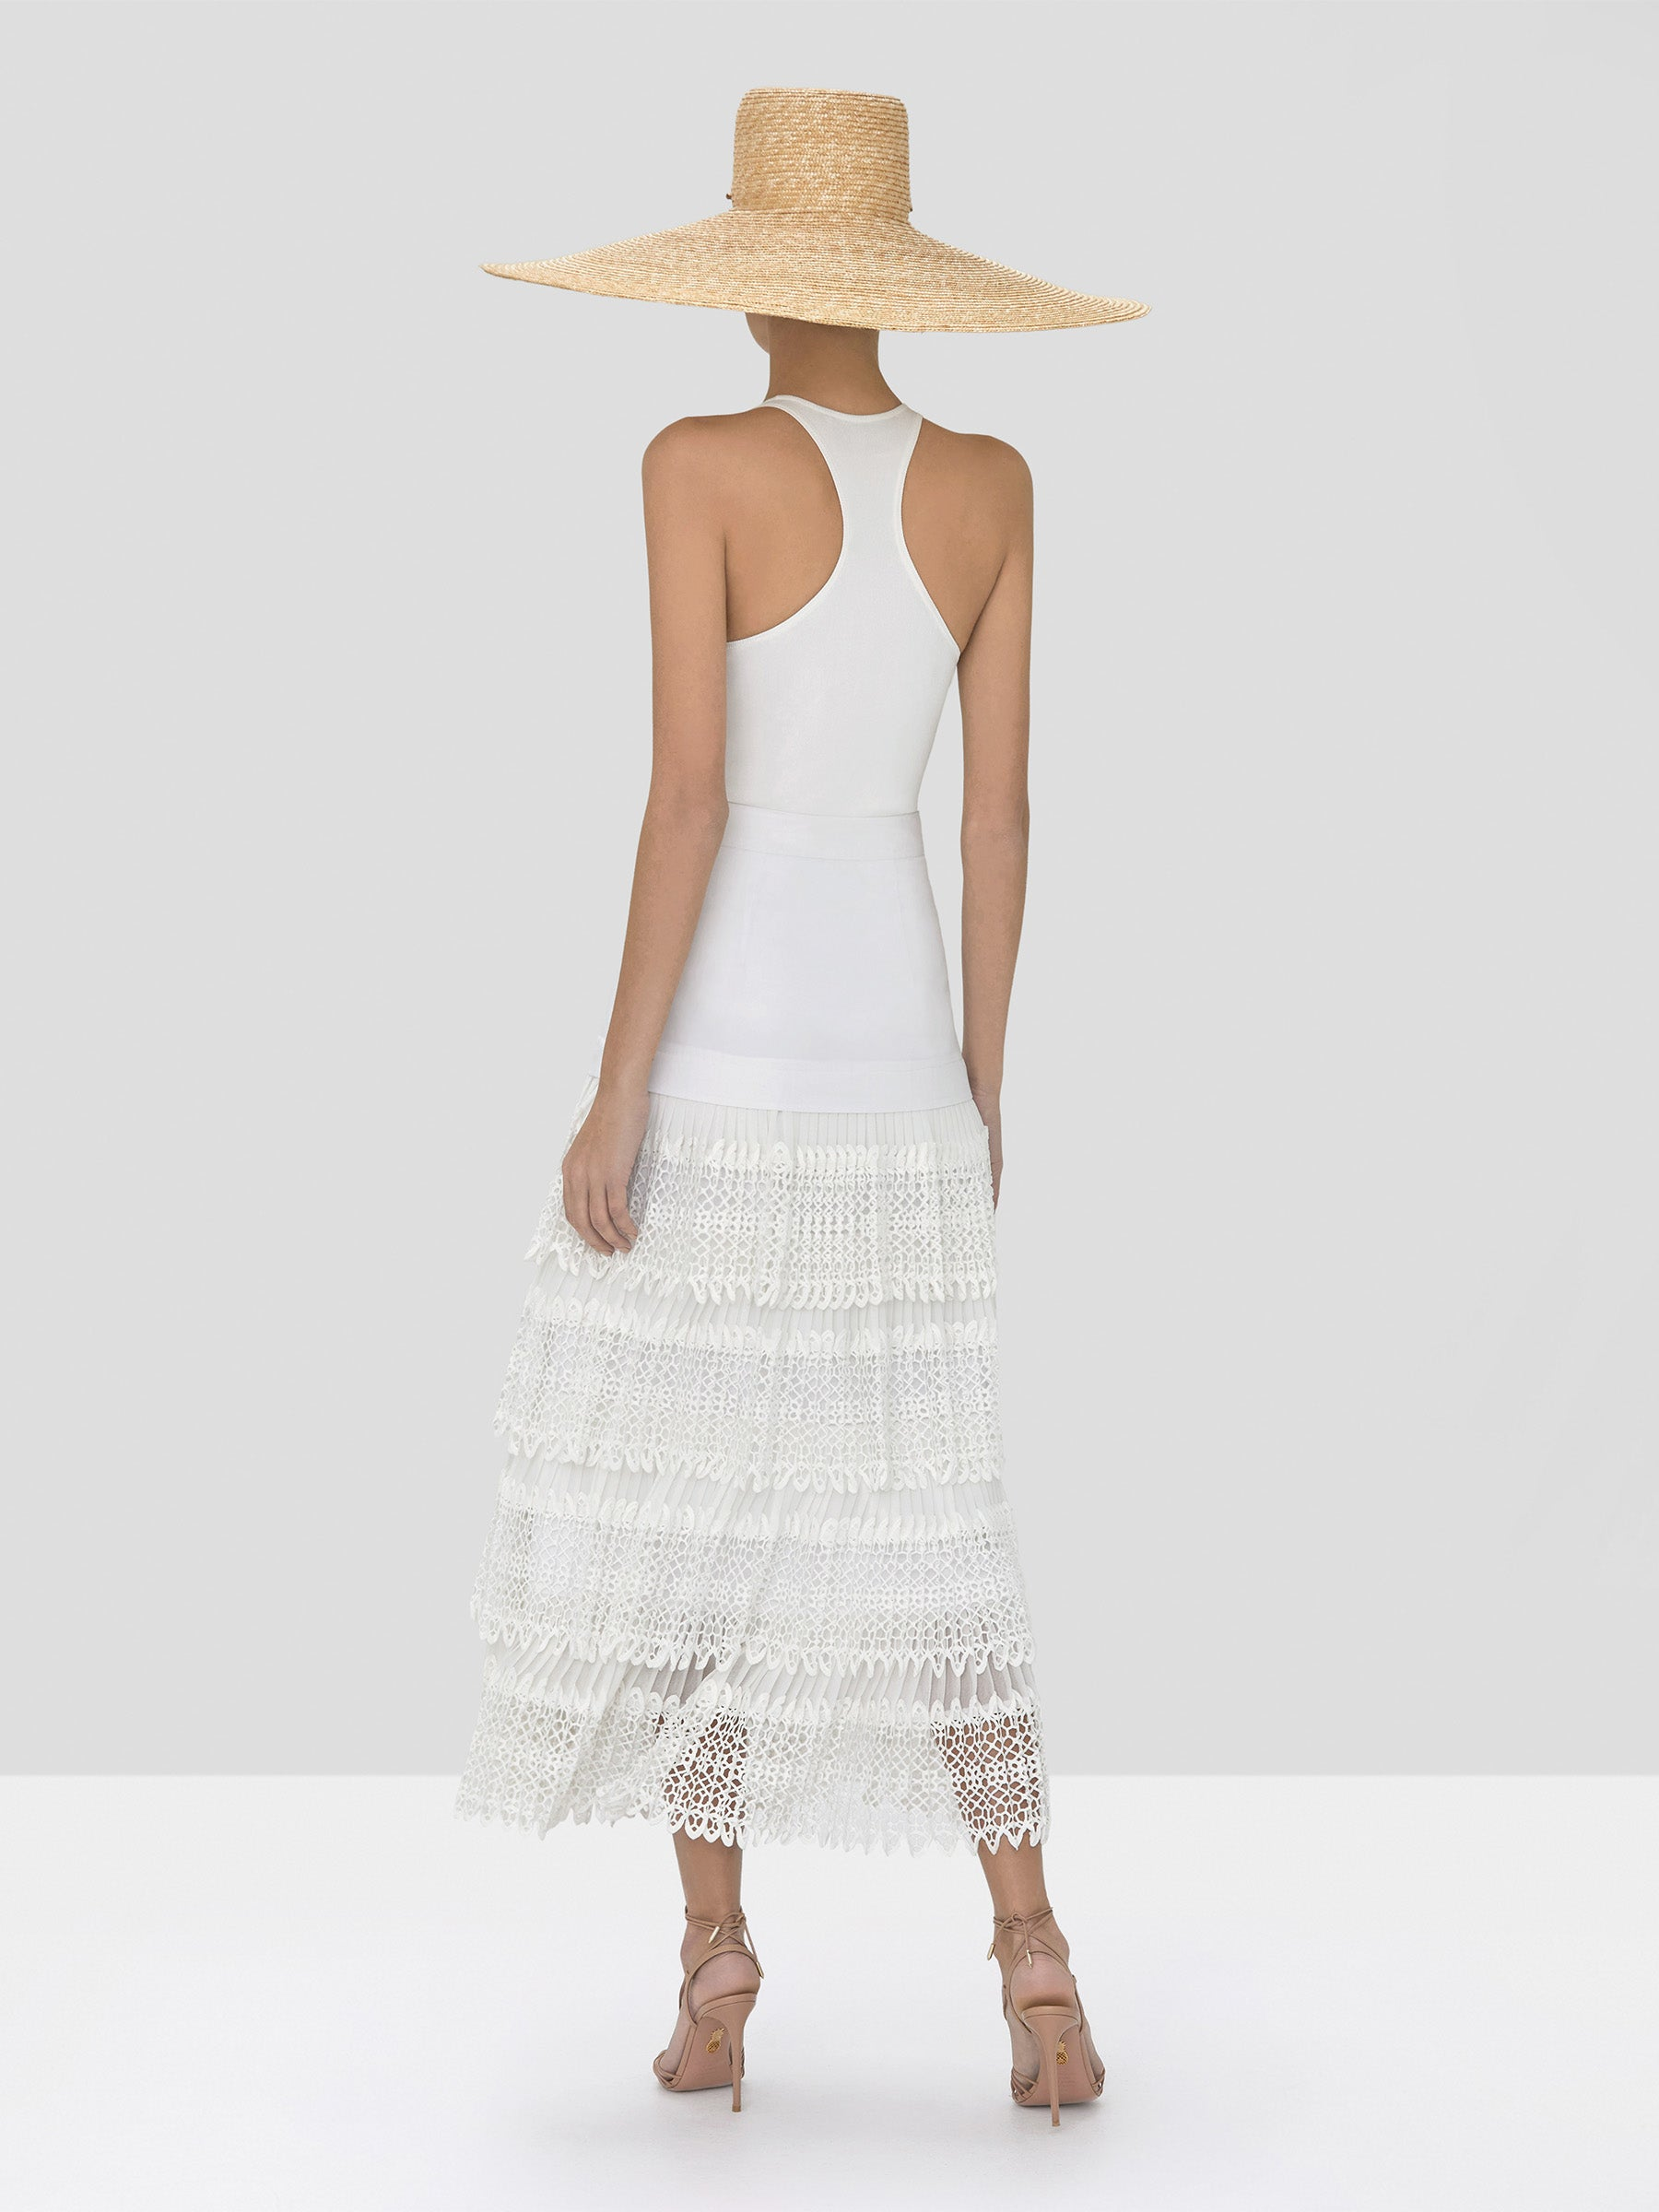 Alexis Zeni Top in White and Helis Skirt in White from Spring Summer 2020 - Rear View